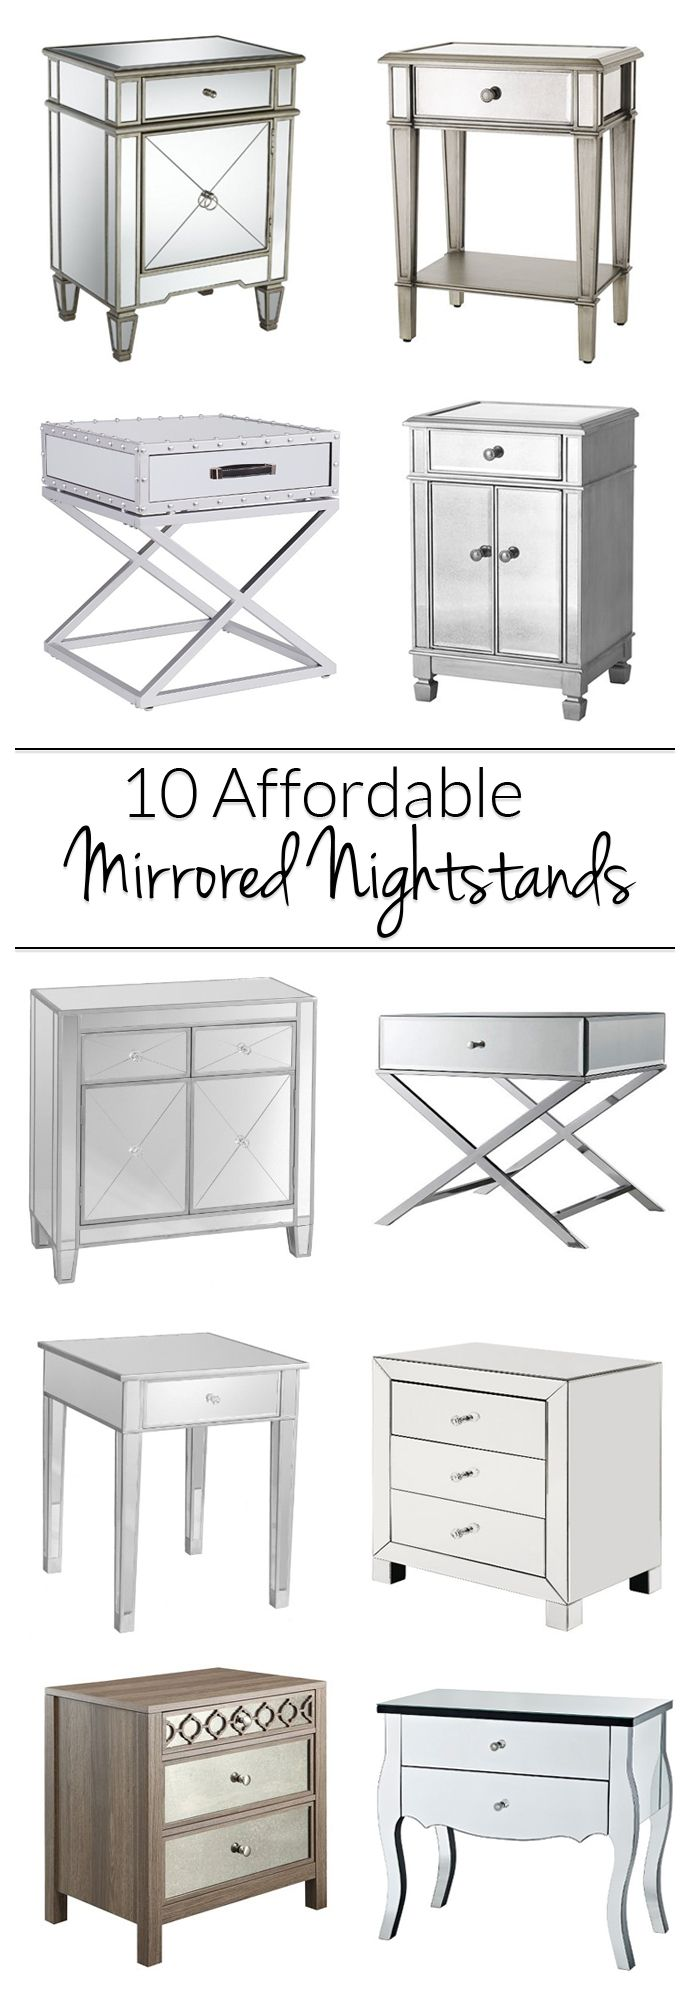 mirrored nightstand. get a mirrored nightstand without breaking the bank! all these glam options for your bedroom